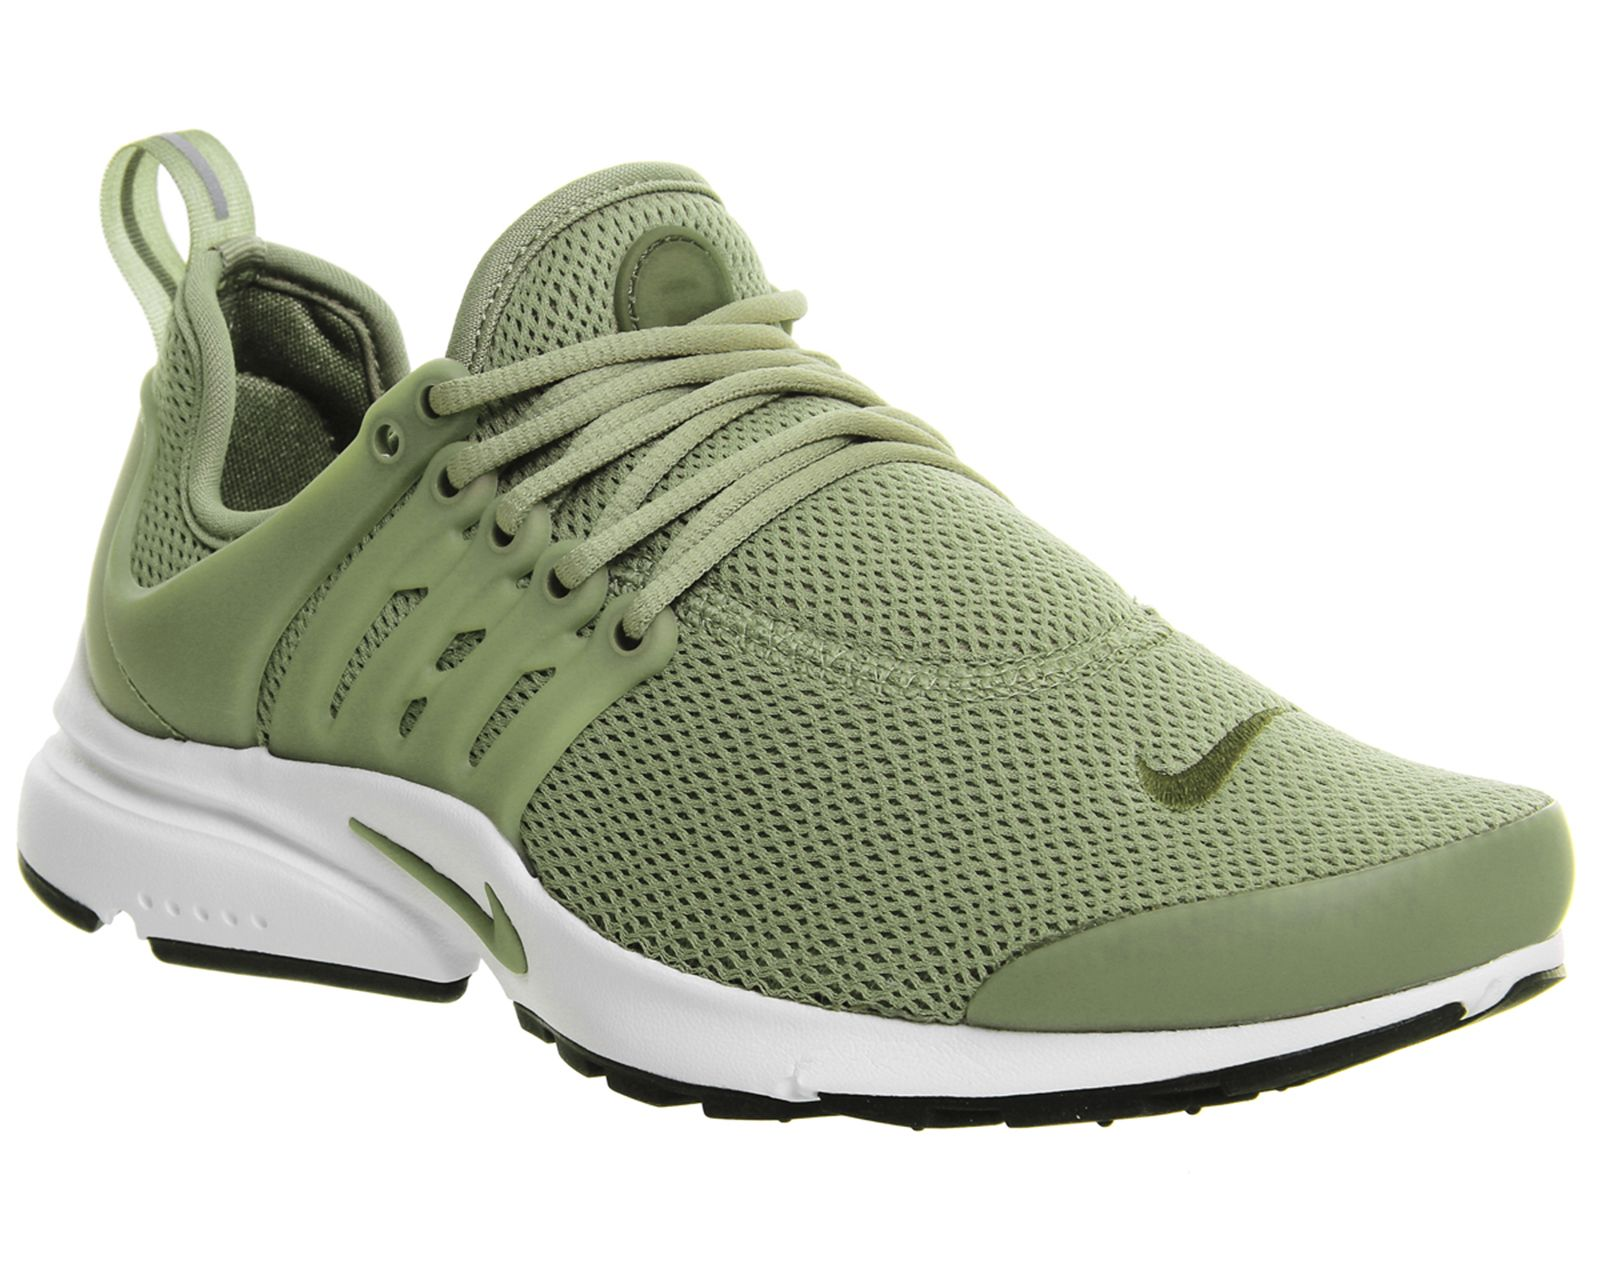 Presto 2019 Womens•shoes• Nike Air In Trainers QdCeBxoWr